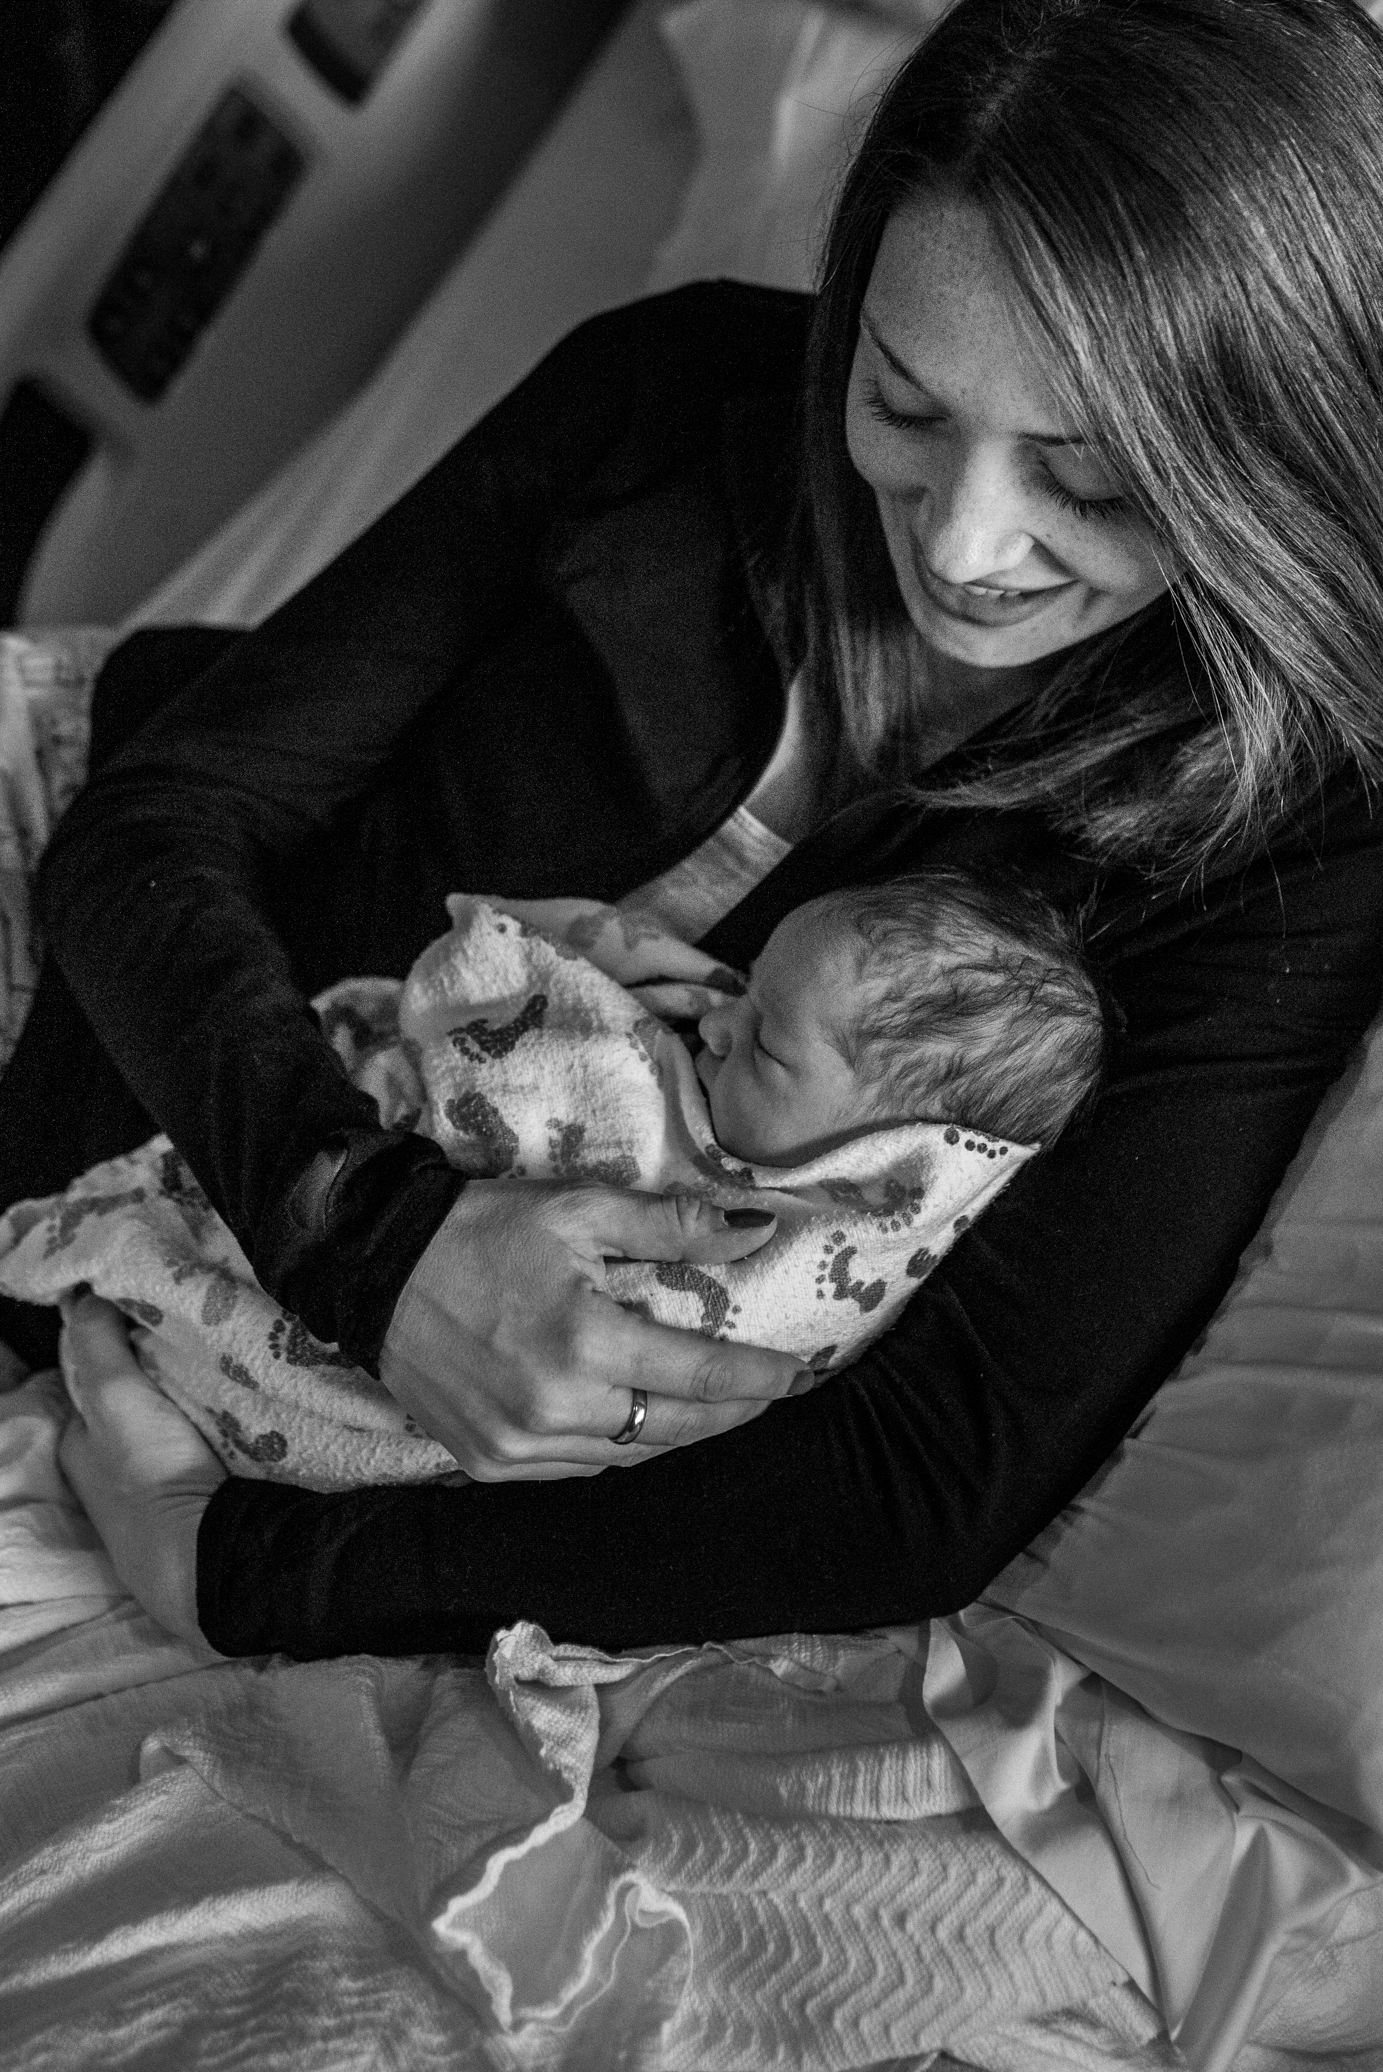 Mom holding newborn baby in Childrens Hospital of Wisconsin hospital bed